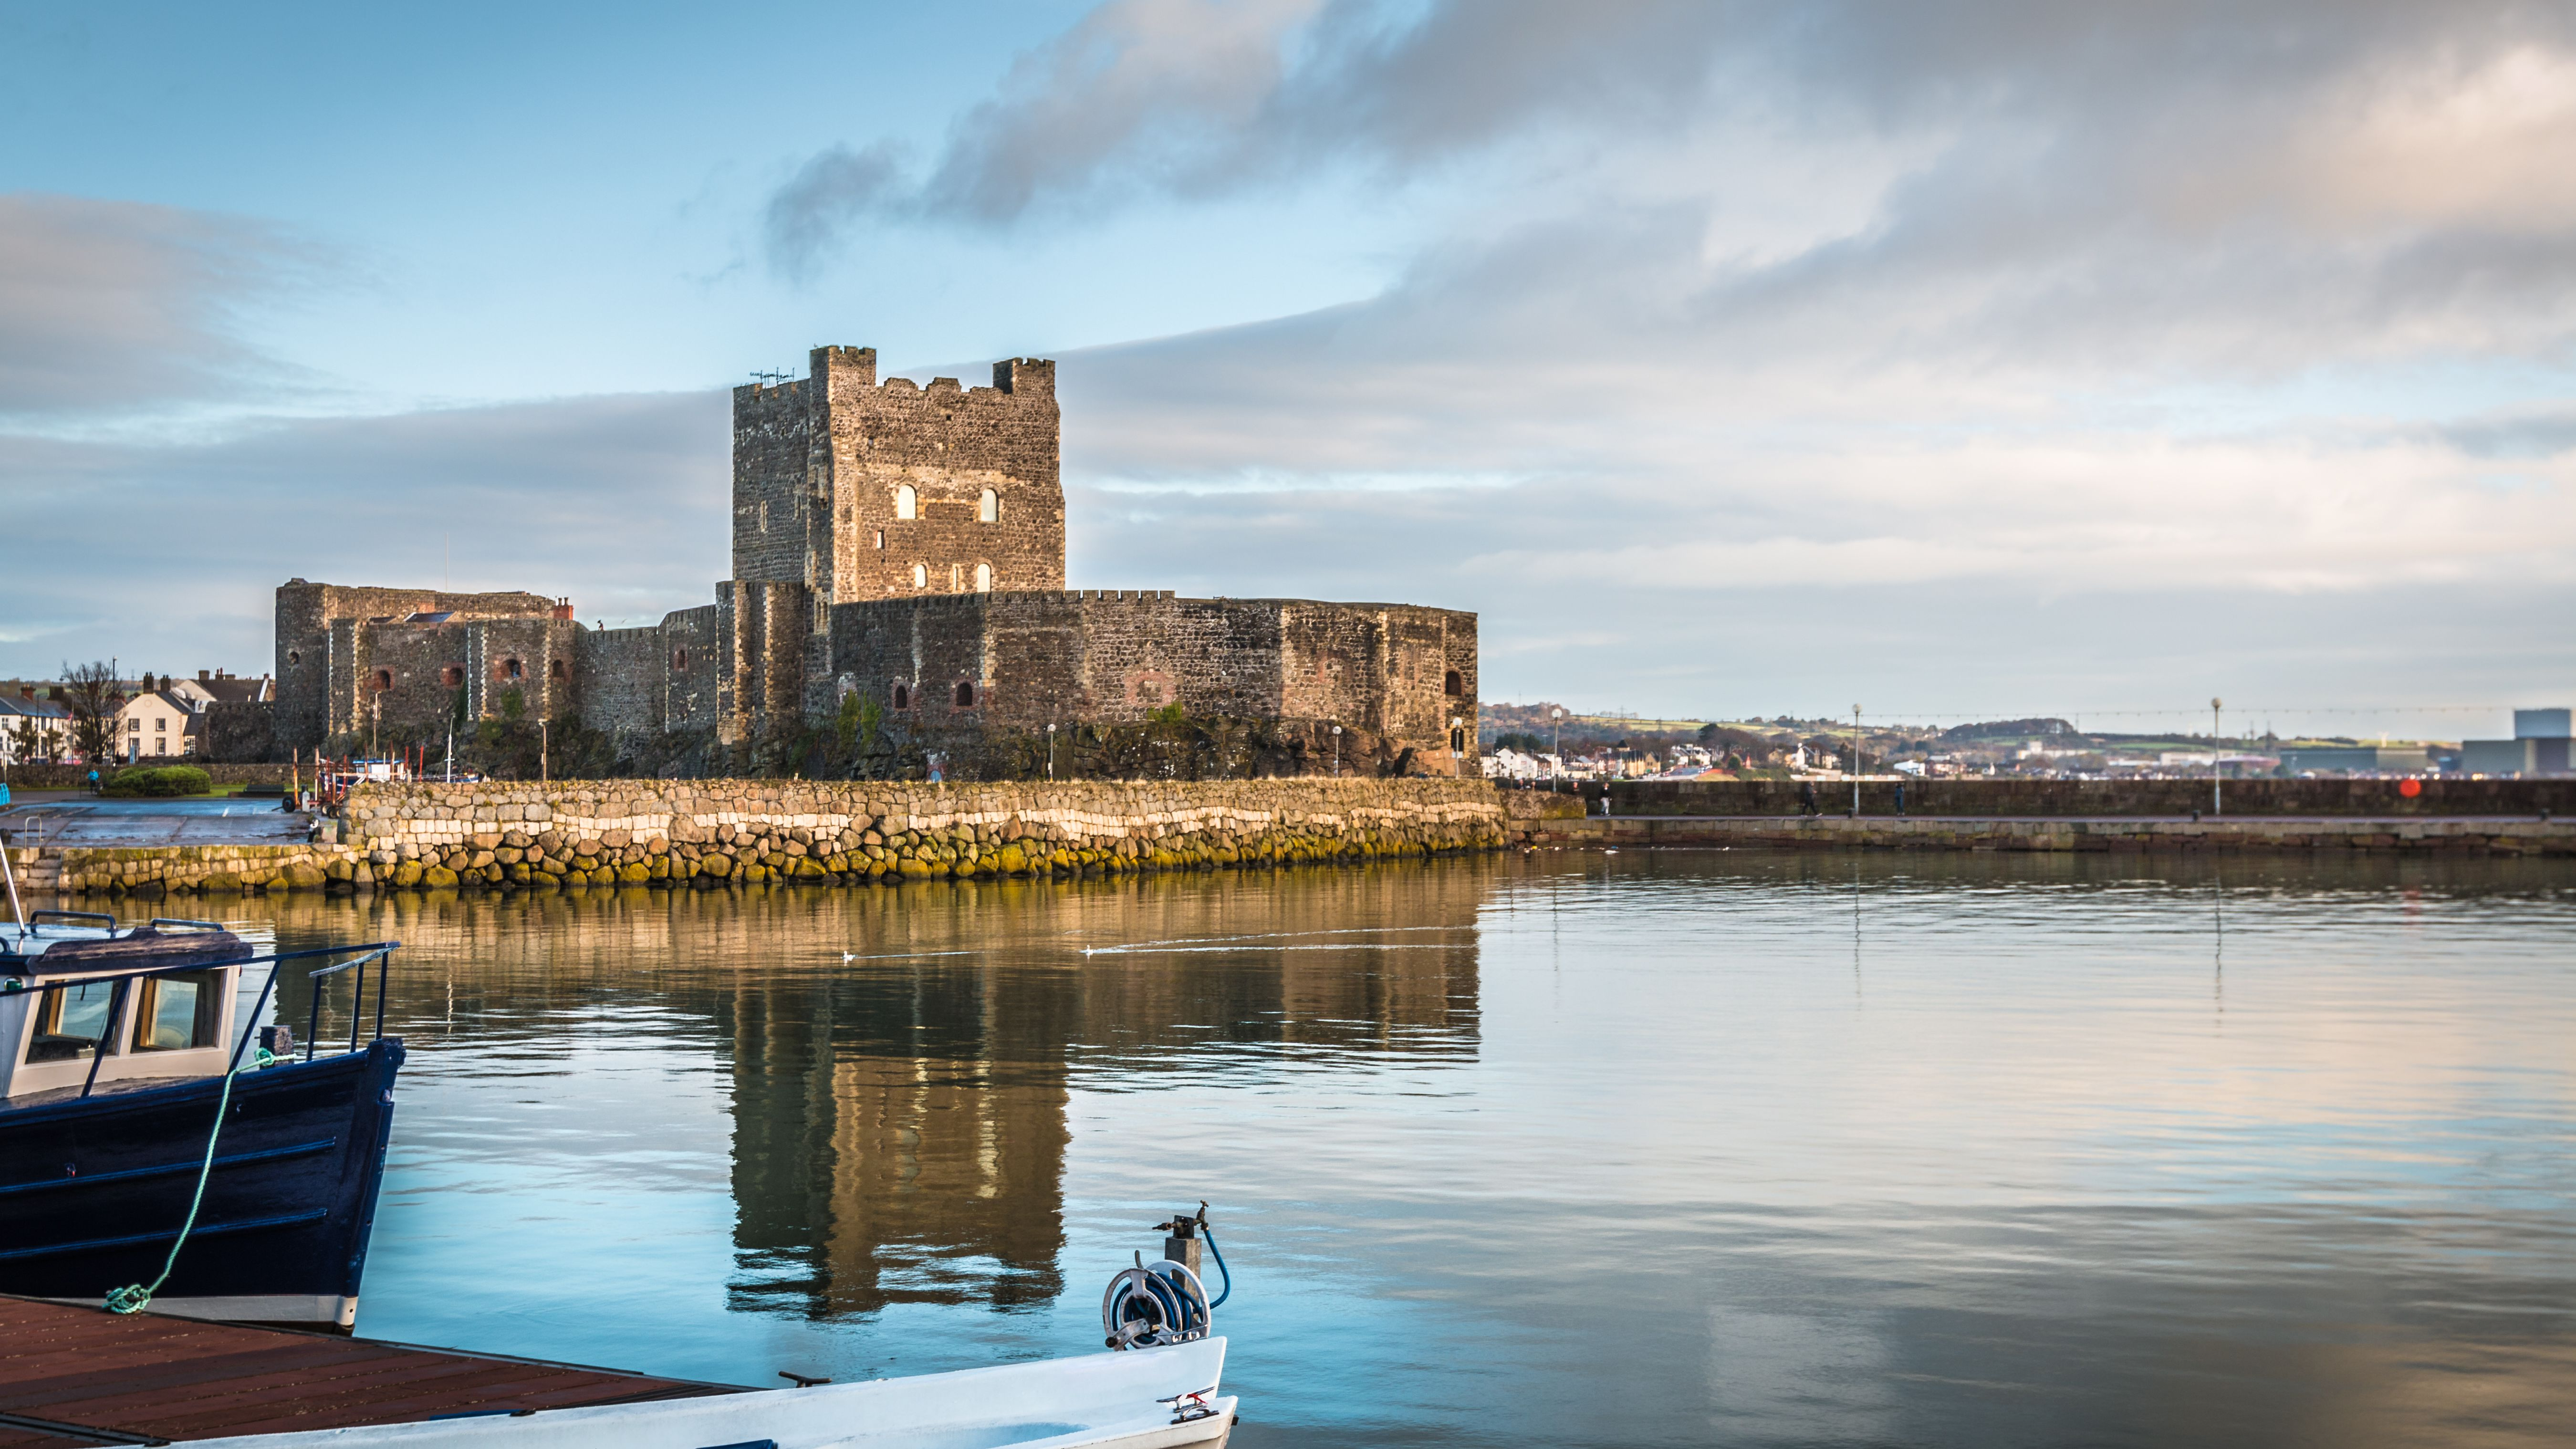 Carrickfergus Song Lyrics and History